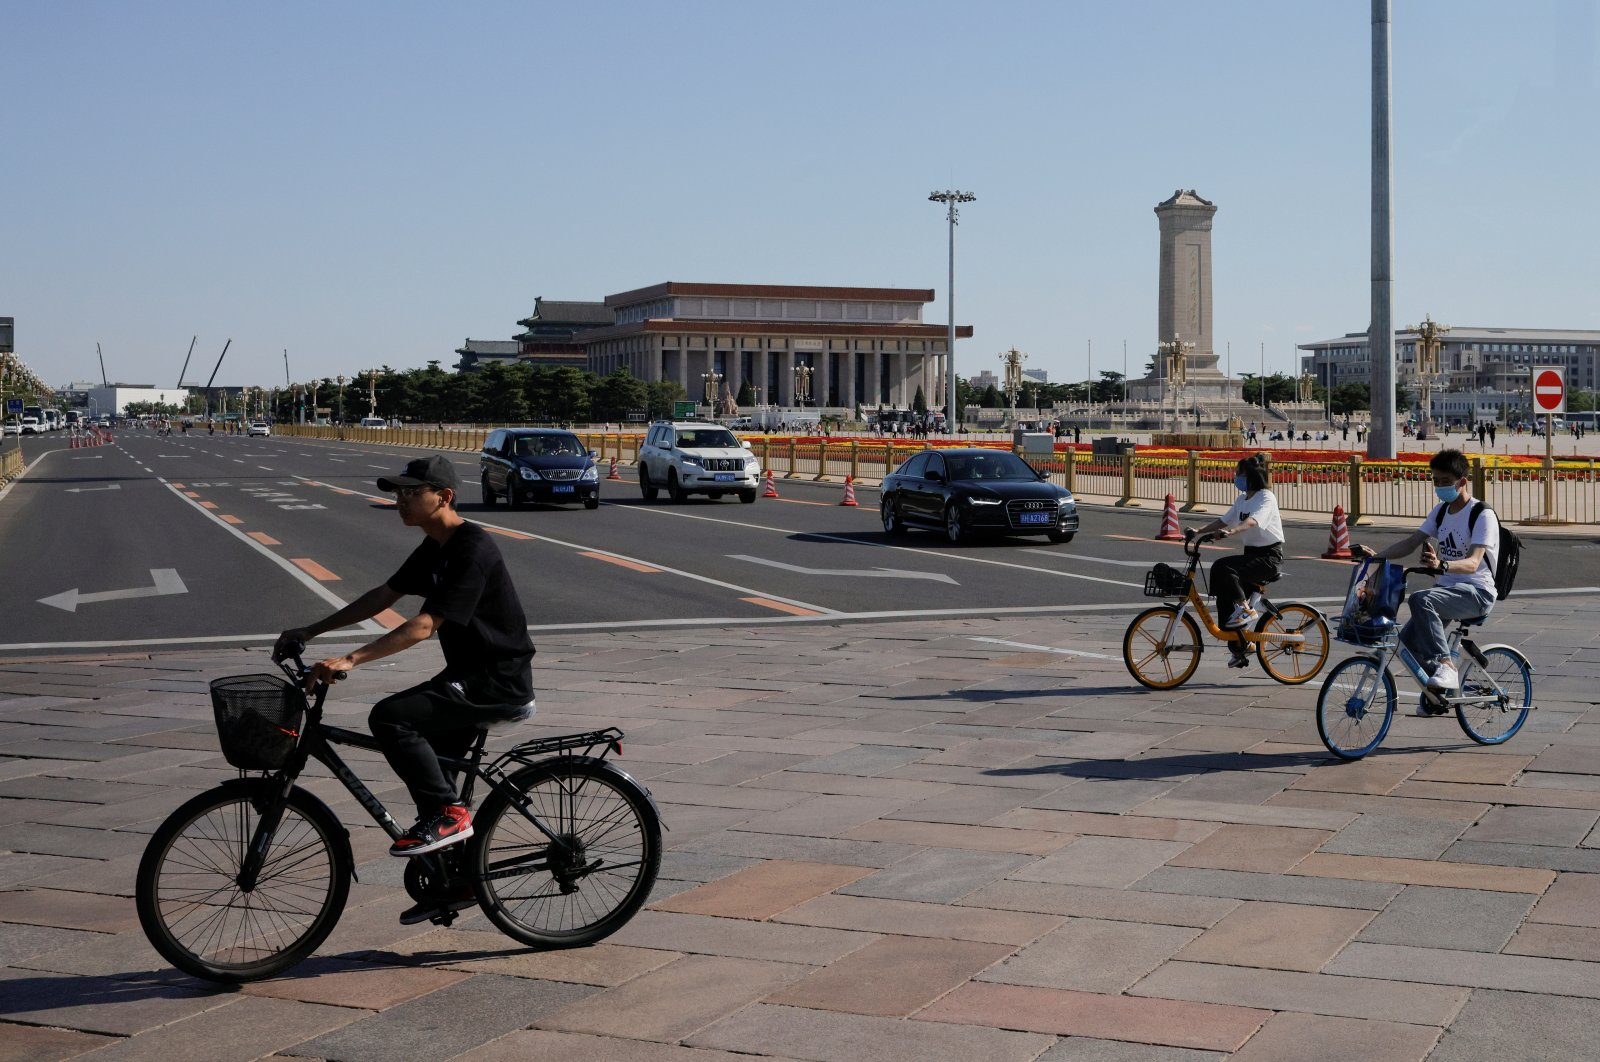 Cyclists cross Tiananmen Square in Beijing, China, June 3, 2021. (Reuters Photo)